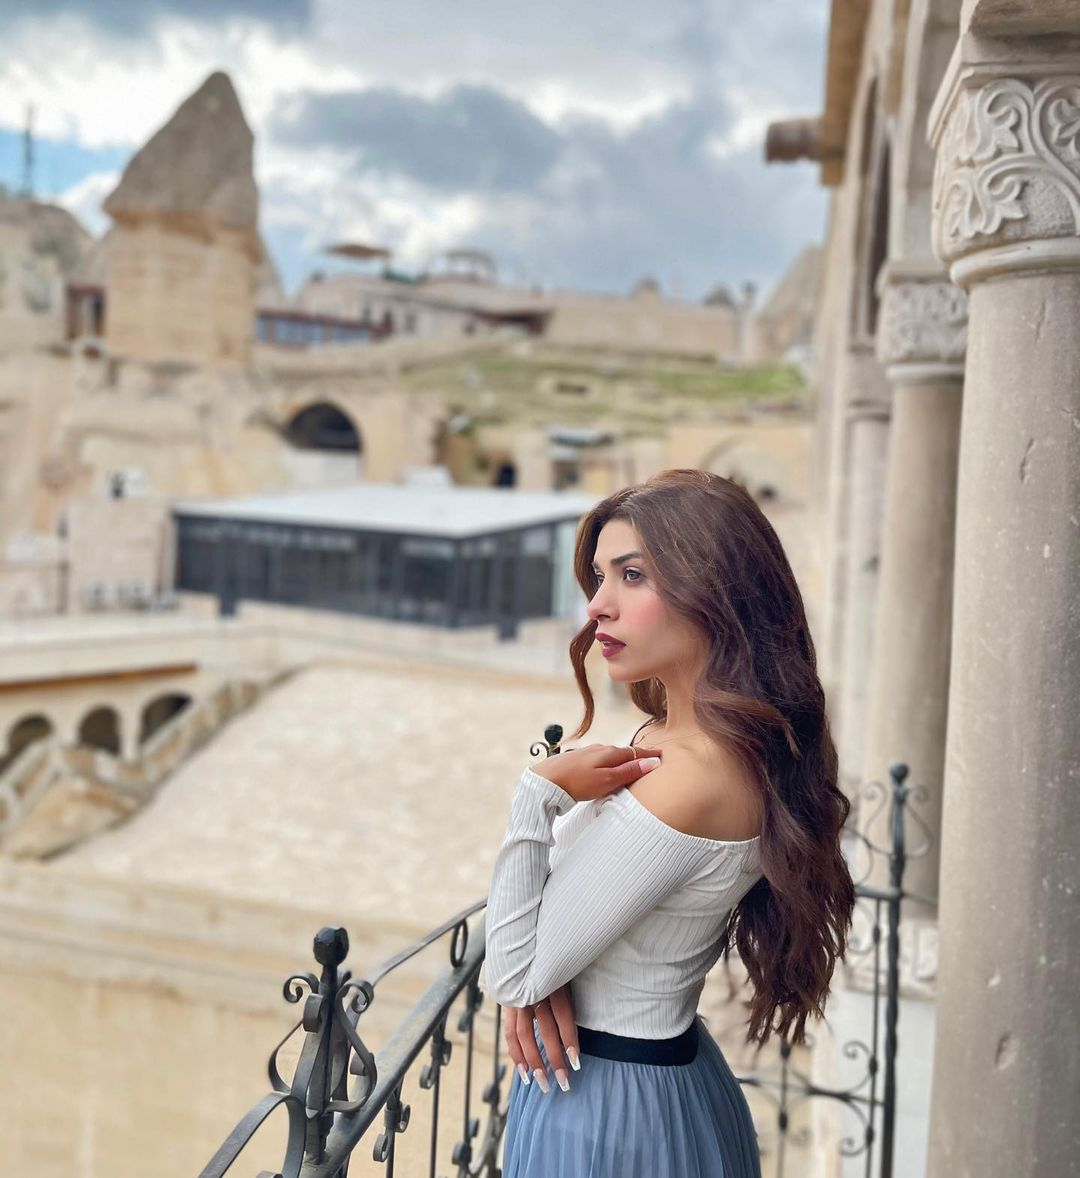 Latest Pictures of Actress Mahi Baloch from Turkey